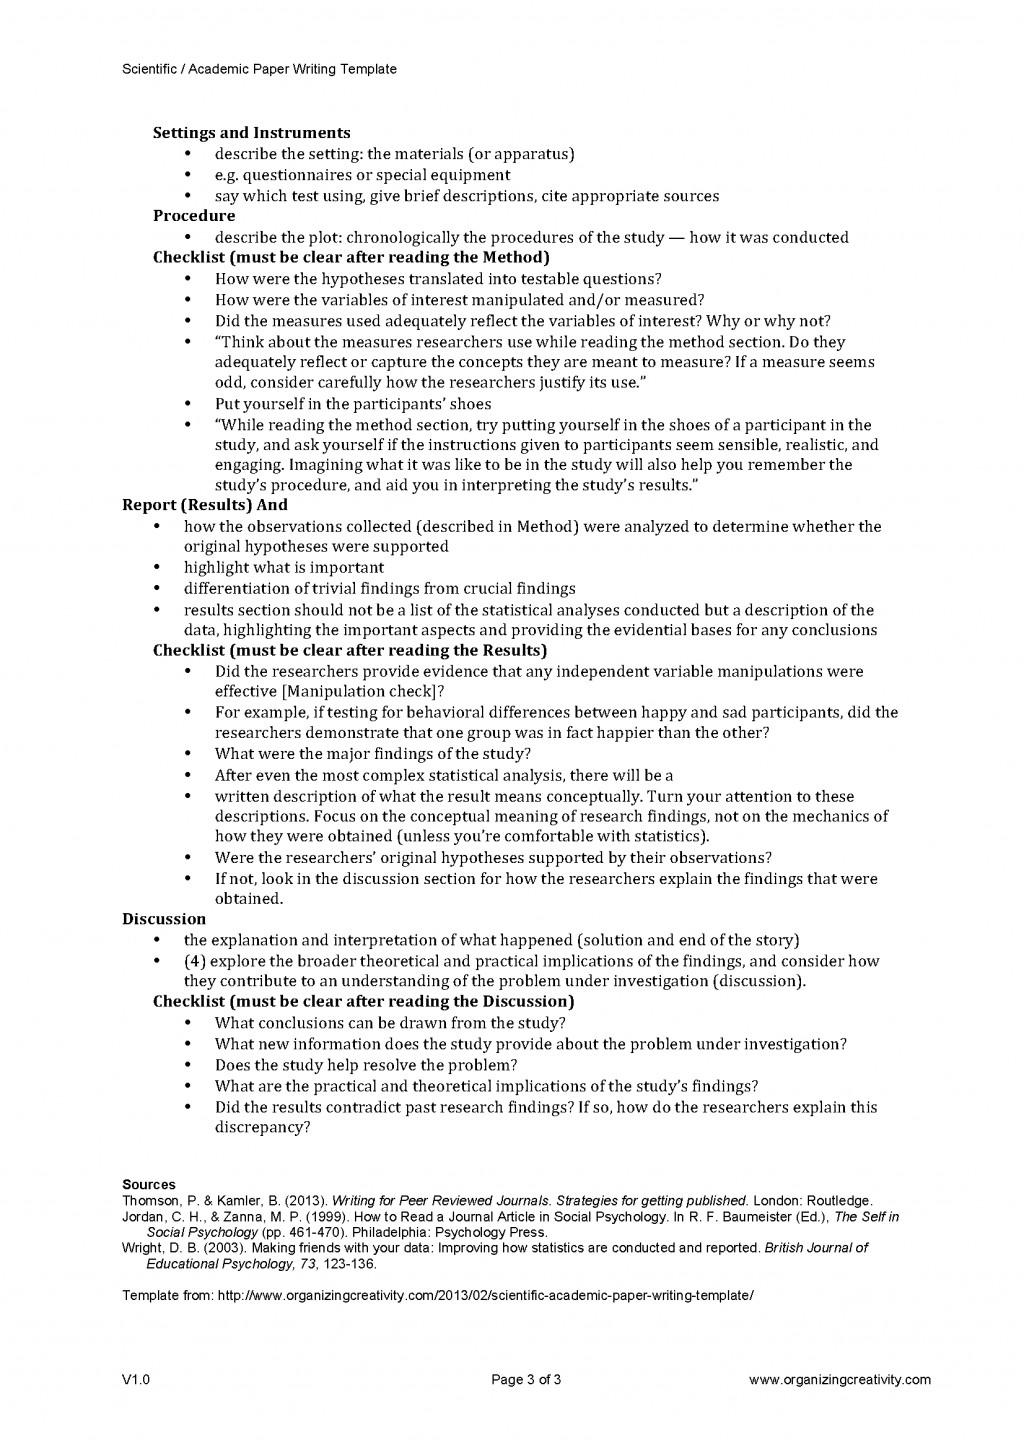 013 Research Paper Scientific Academic Writing Template Page 3 Methods Unique Outline Method Large